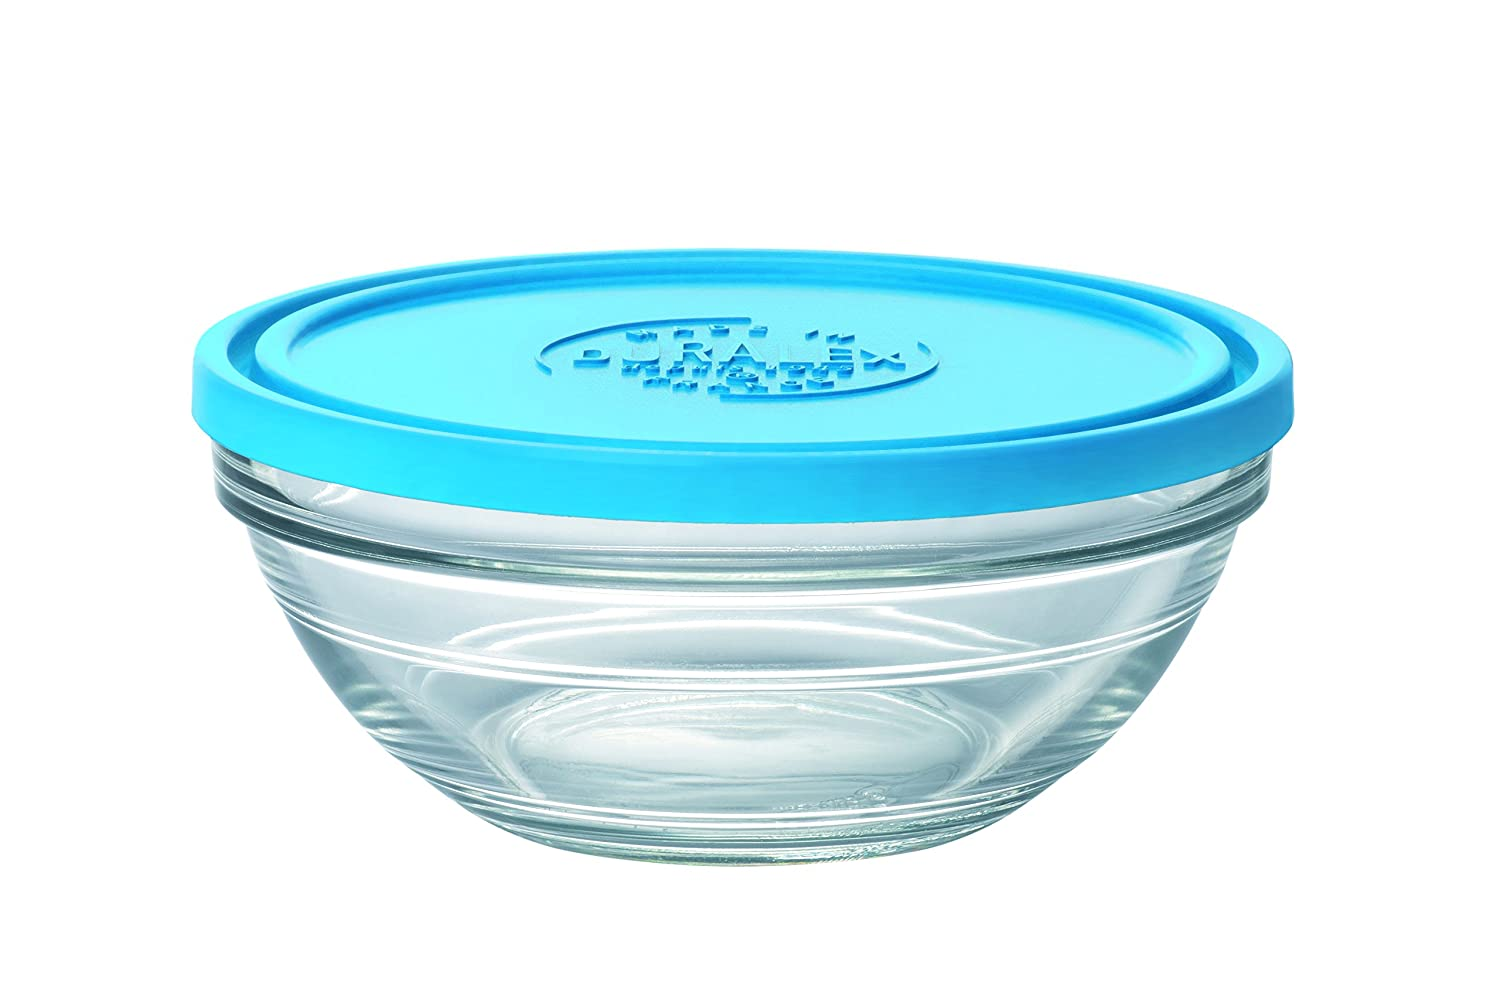 Duralex Made In France Lys Round Bowl with Lid, 1 quart, Clear/Blue